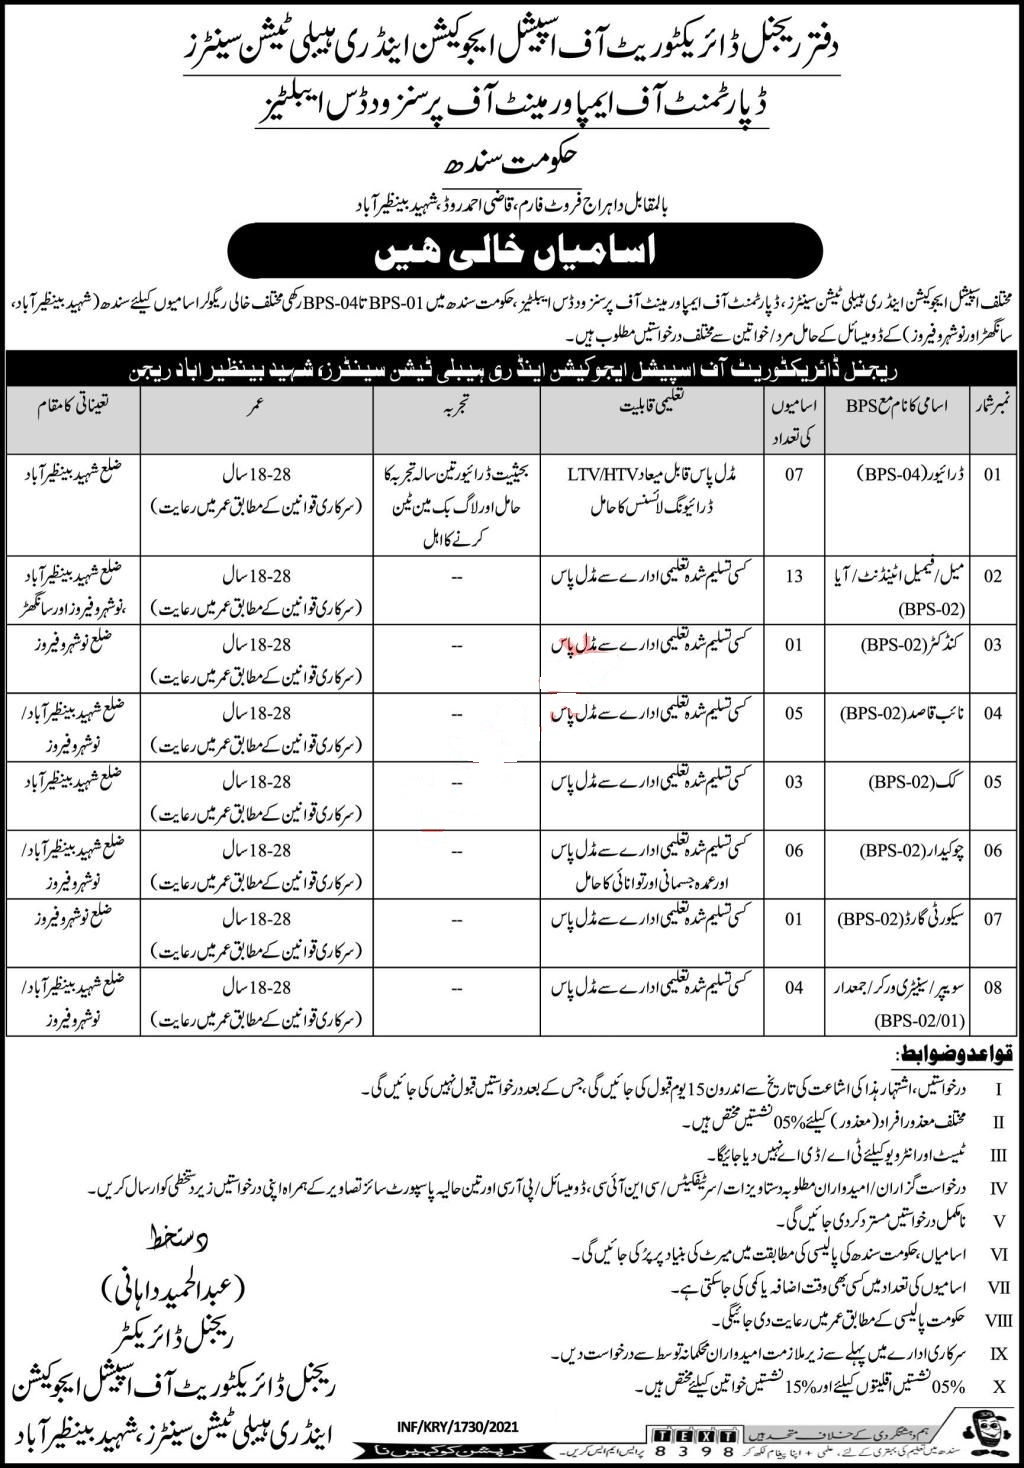 Department of Empowerment of Persons with Disabilities Jobs 2021 for Driver, LTV Driver, HTV Driver, Dispatch Rider, Female Attendant, Conductor, Conductor Female, Naib Qasid, Cook, Chowkidar, Sanitary Worker